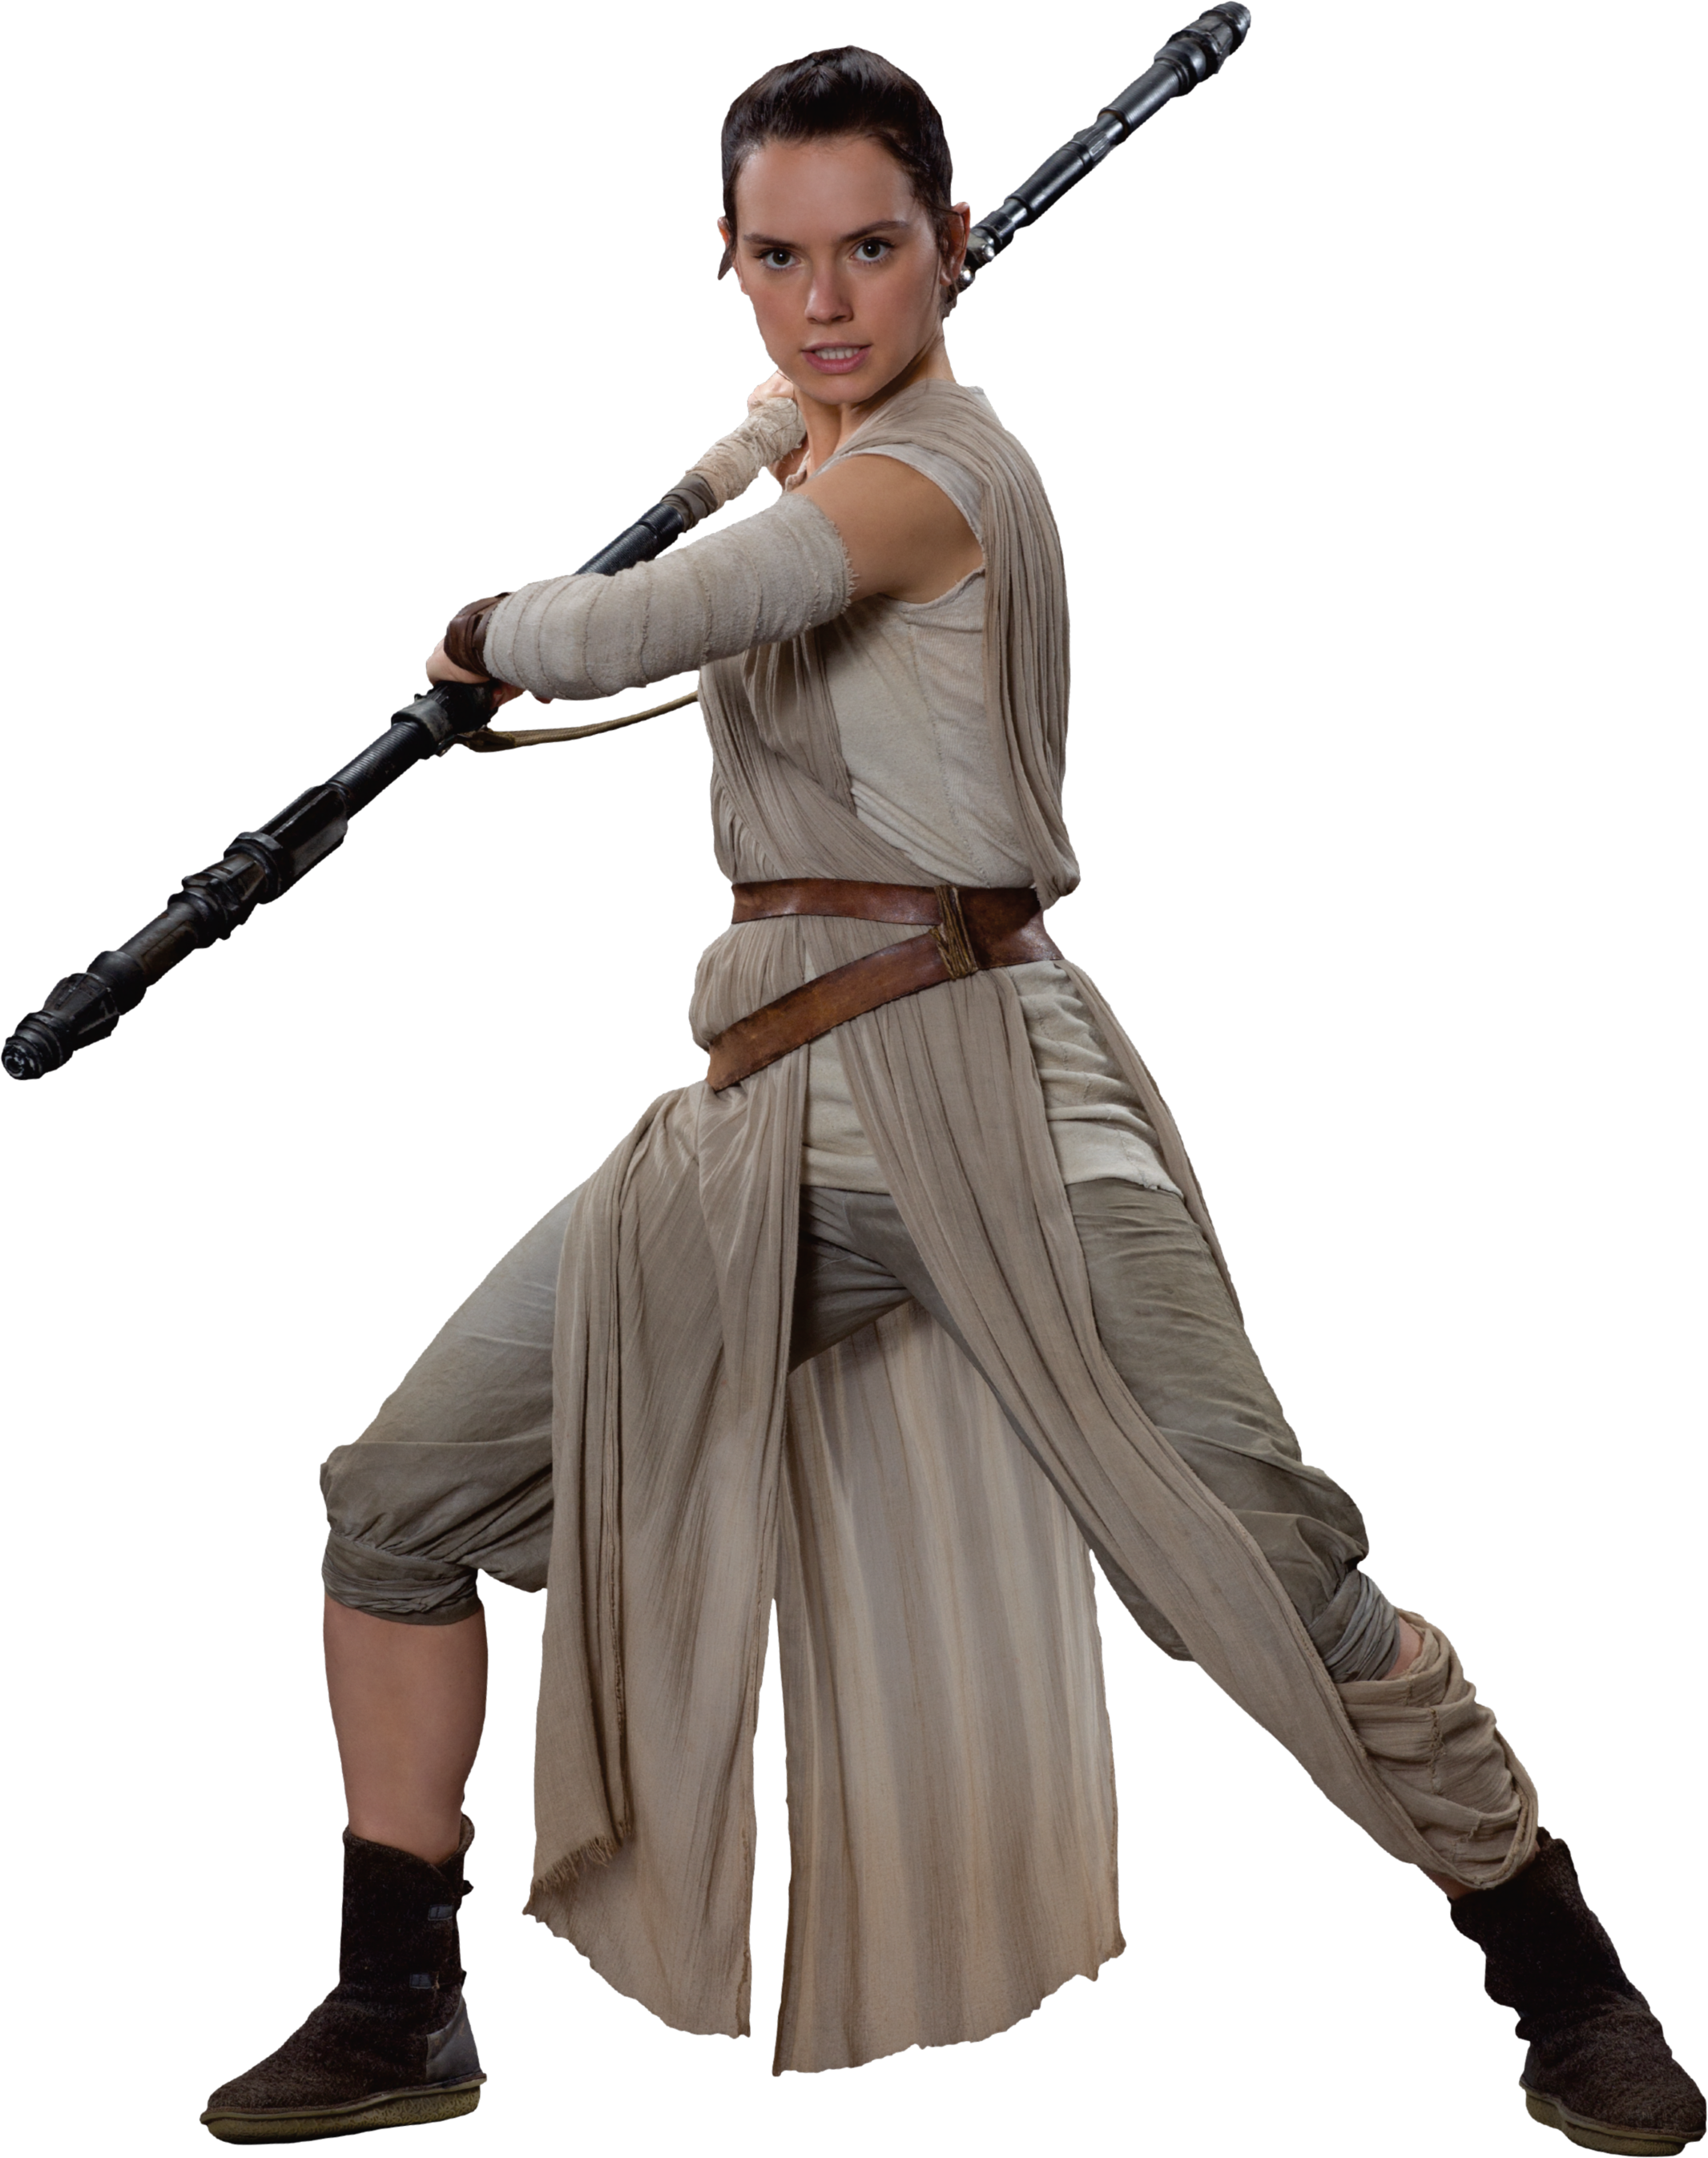 Rey Skywalker Star Wars Png PNG Image